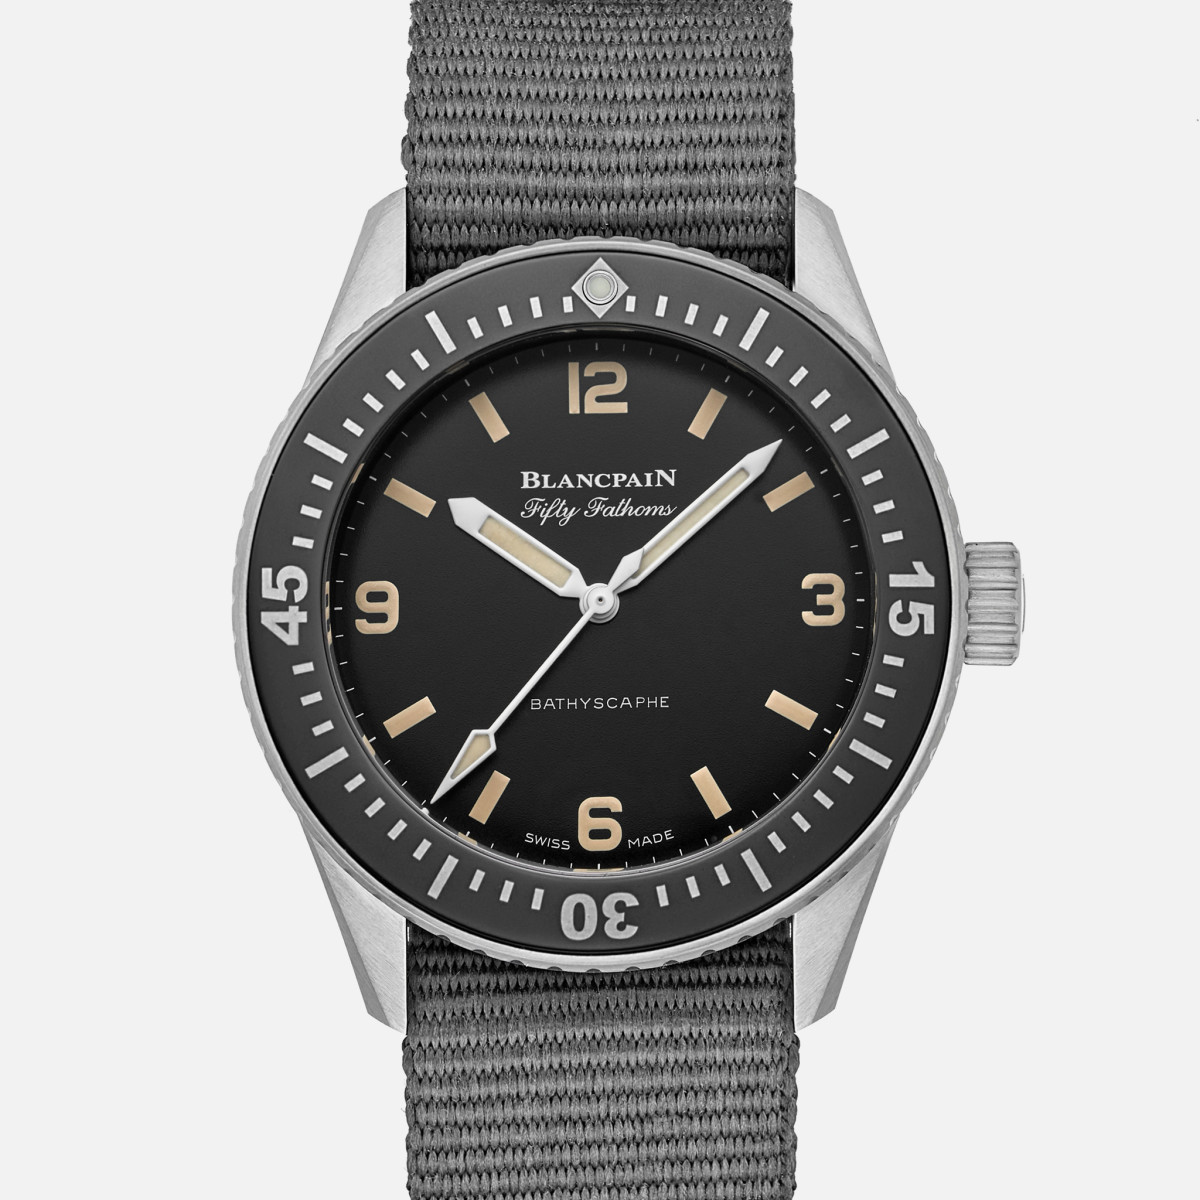 Blancpain for Hodinkee Fifty Fathoms Bathyscaphe